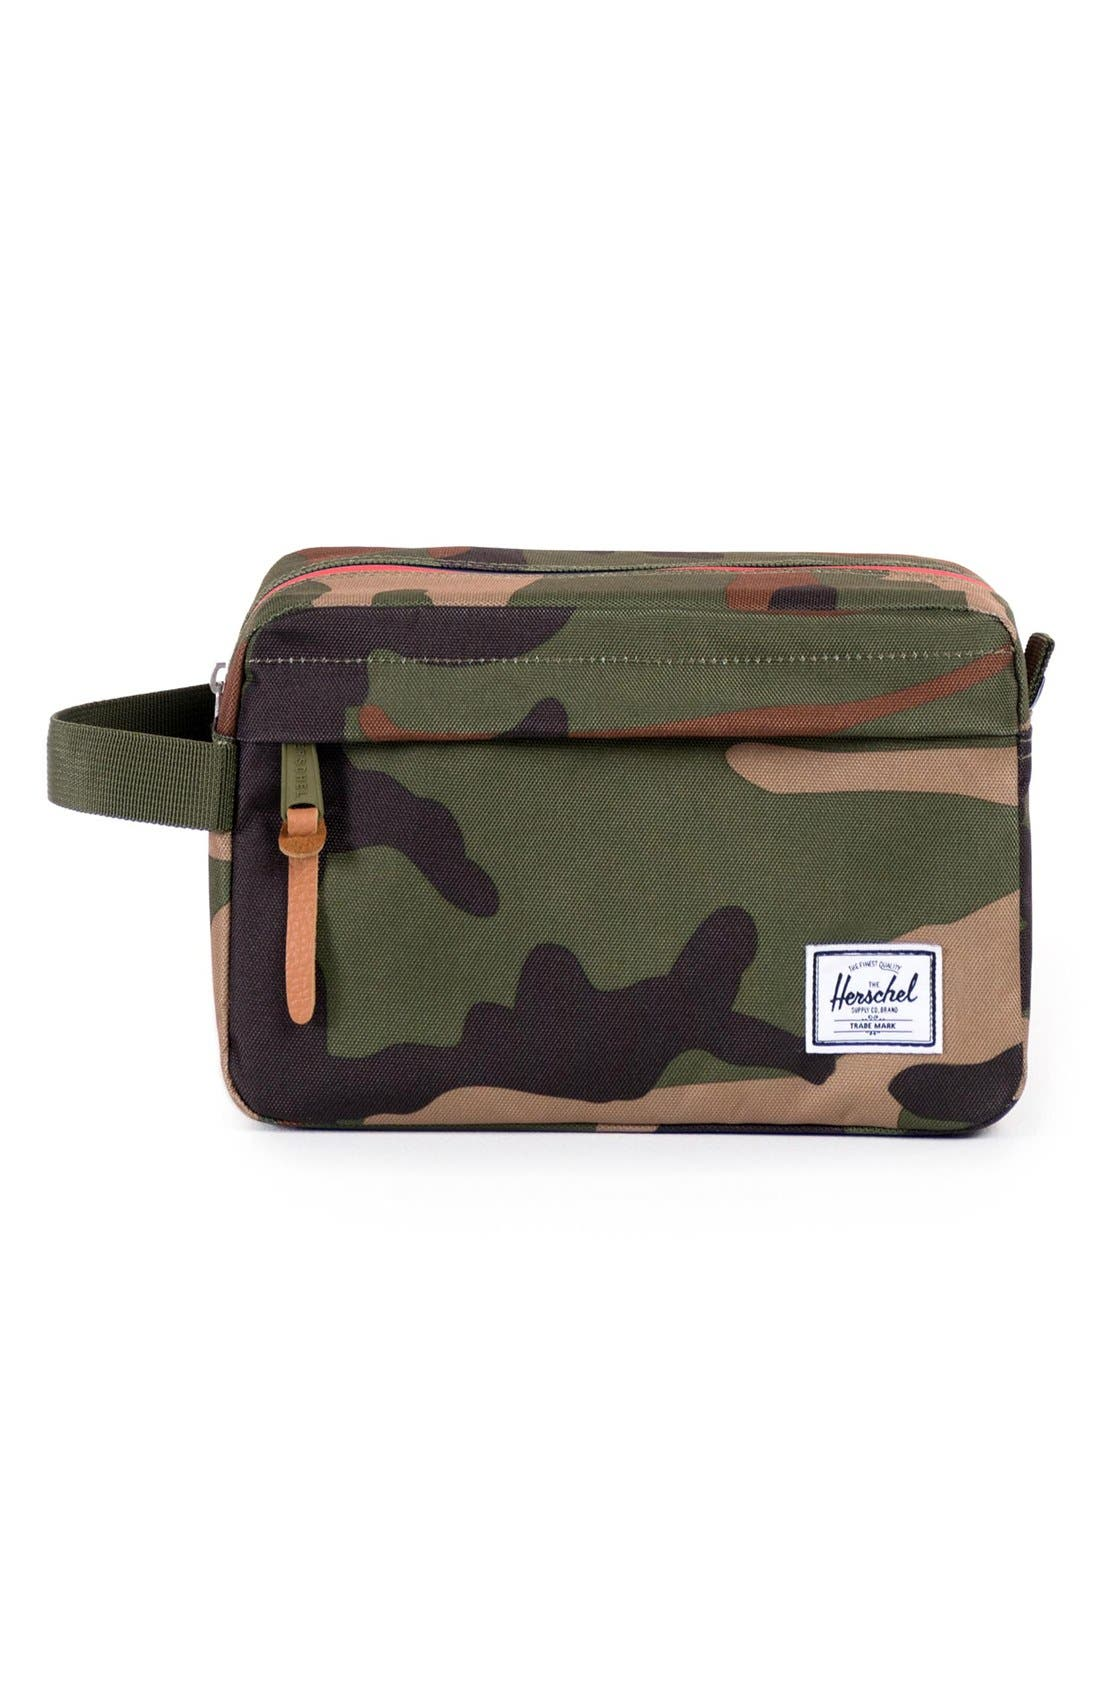 'Chapter' Travel Kit,                         Main,                         color, 349